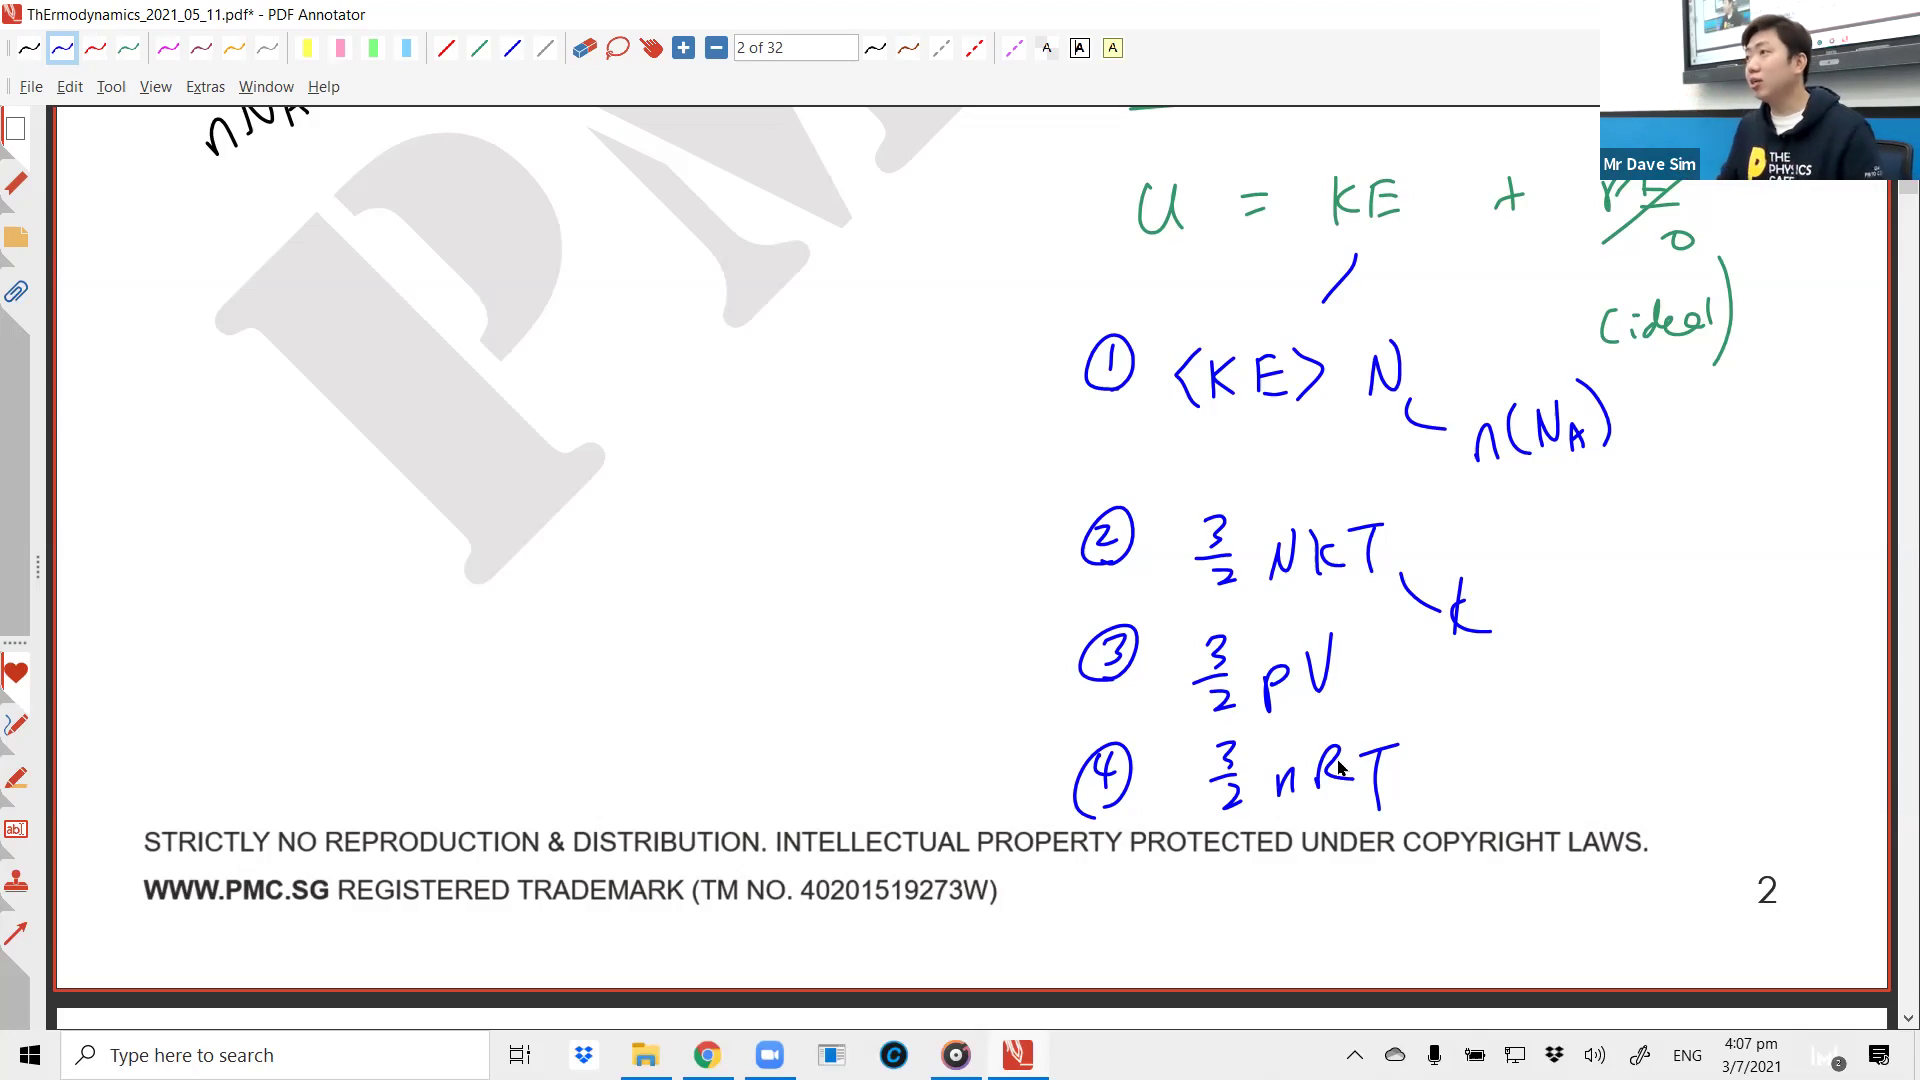 [THERMAL PHYSICS] Kinetic Theory of Gases